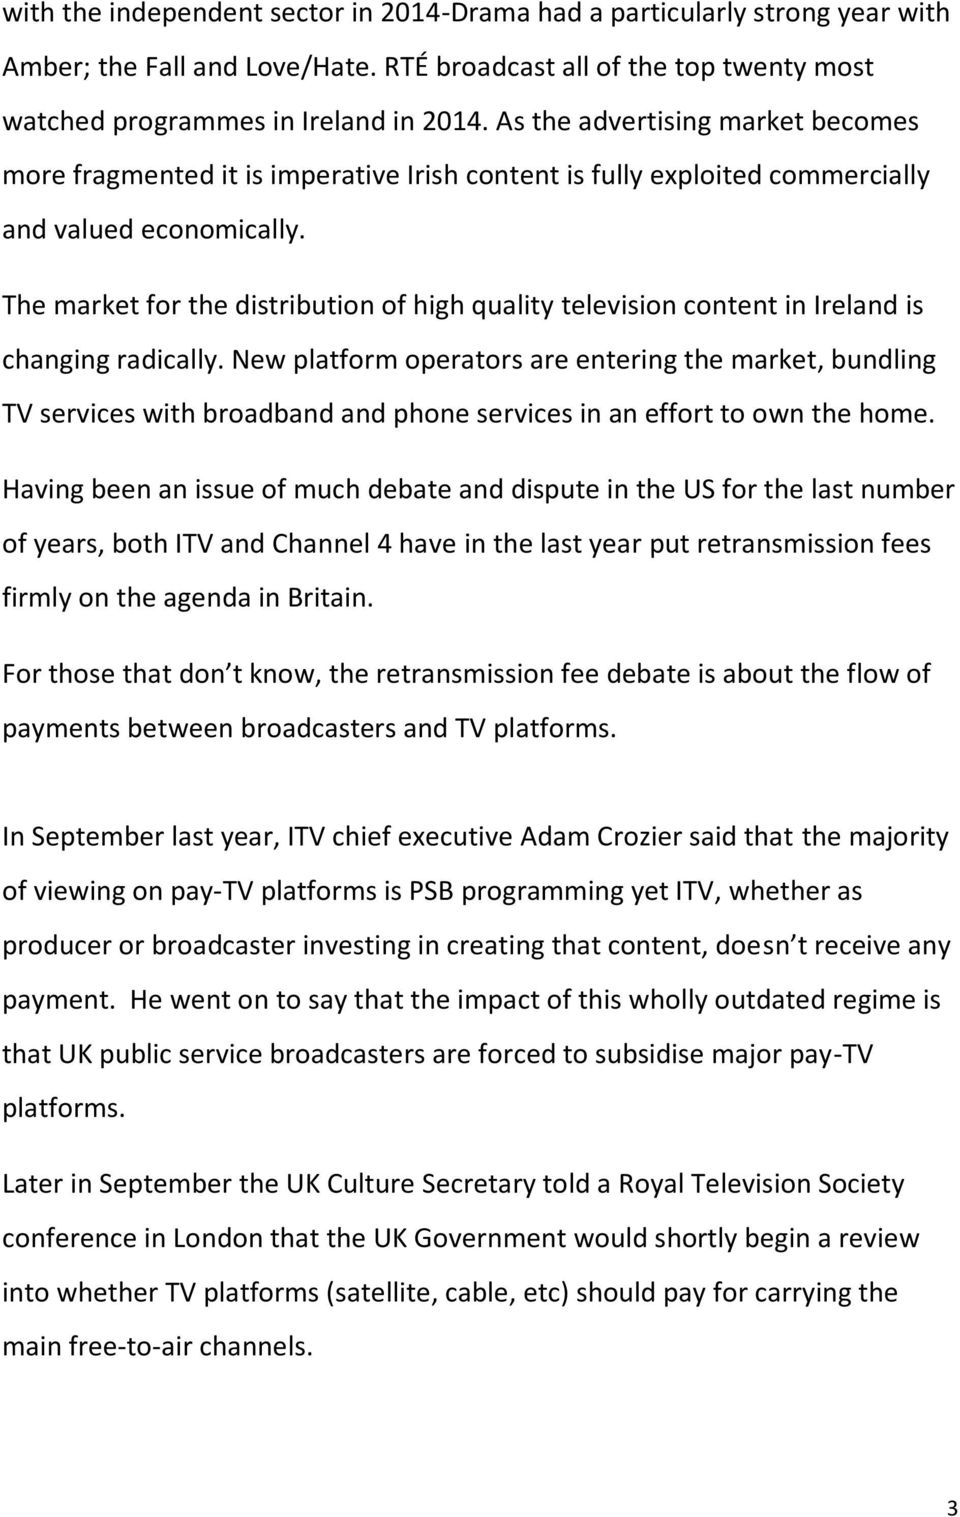 The market for the distribution of high quality television content in Ireland is changing radically.